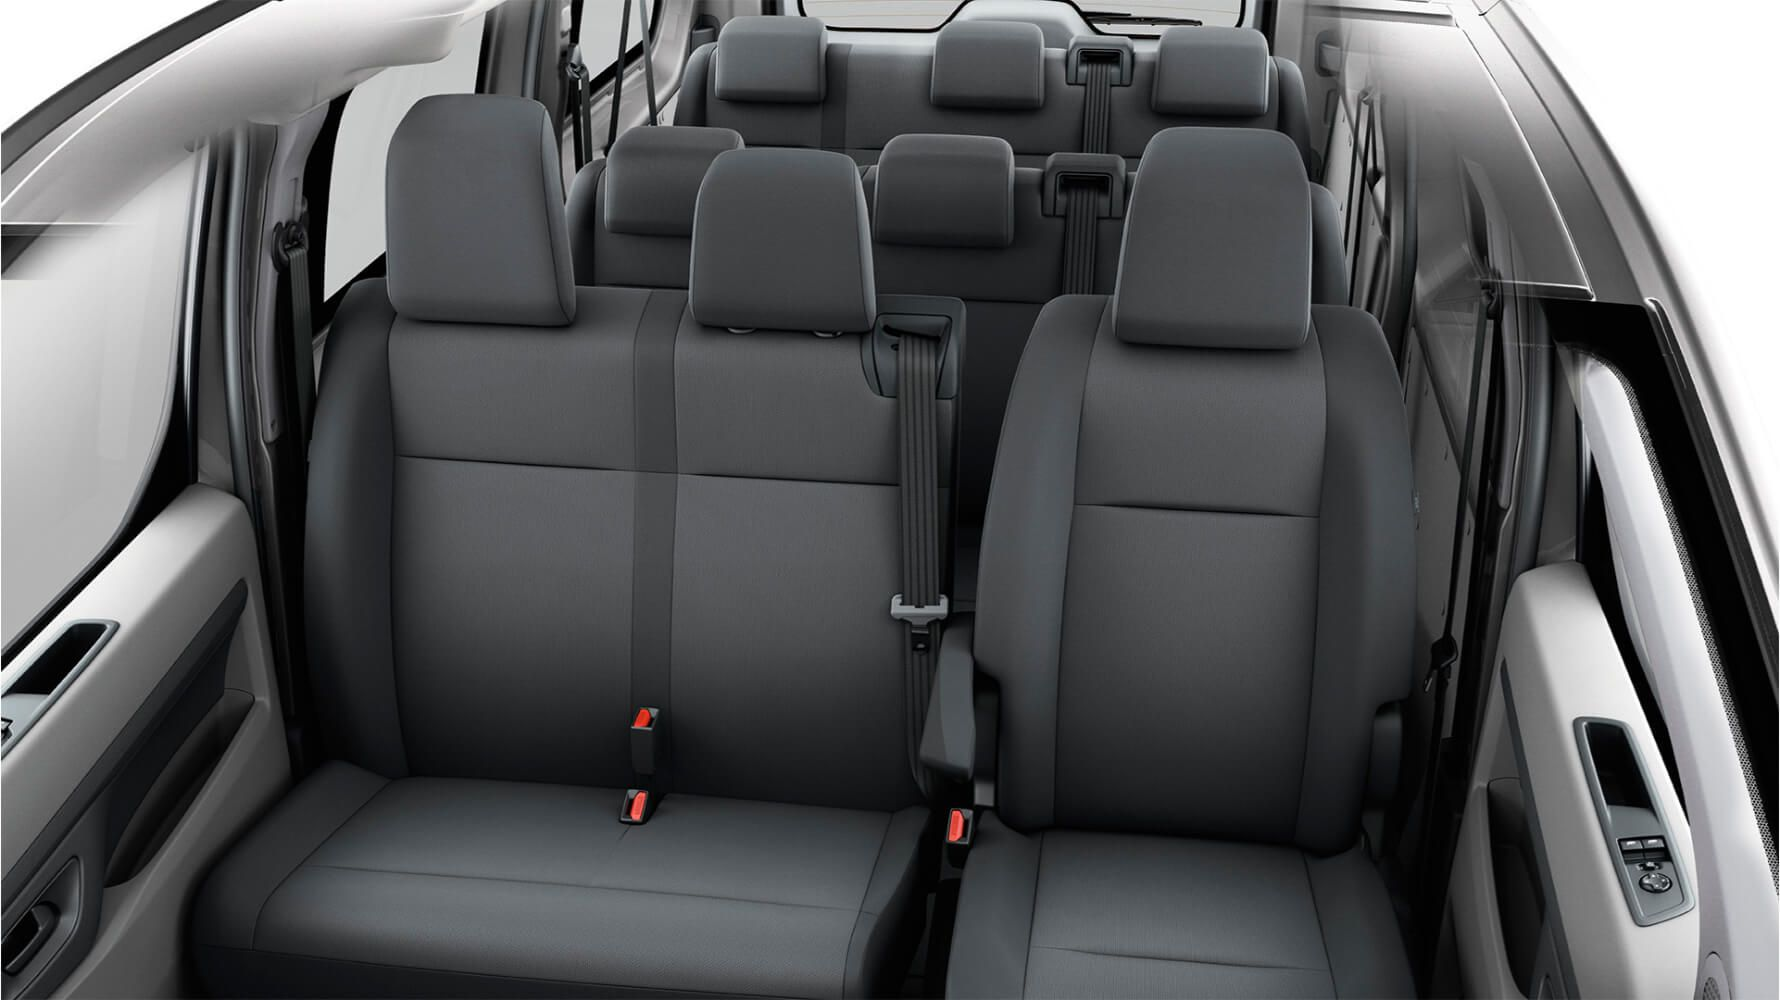 toyota_proace_2019_gallery_011_full_tcm_3046_1703670